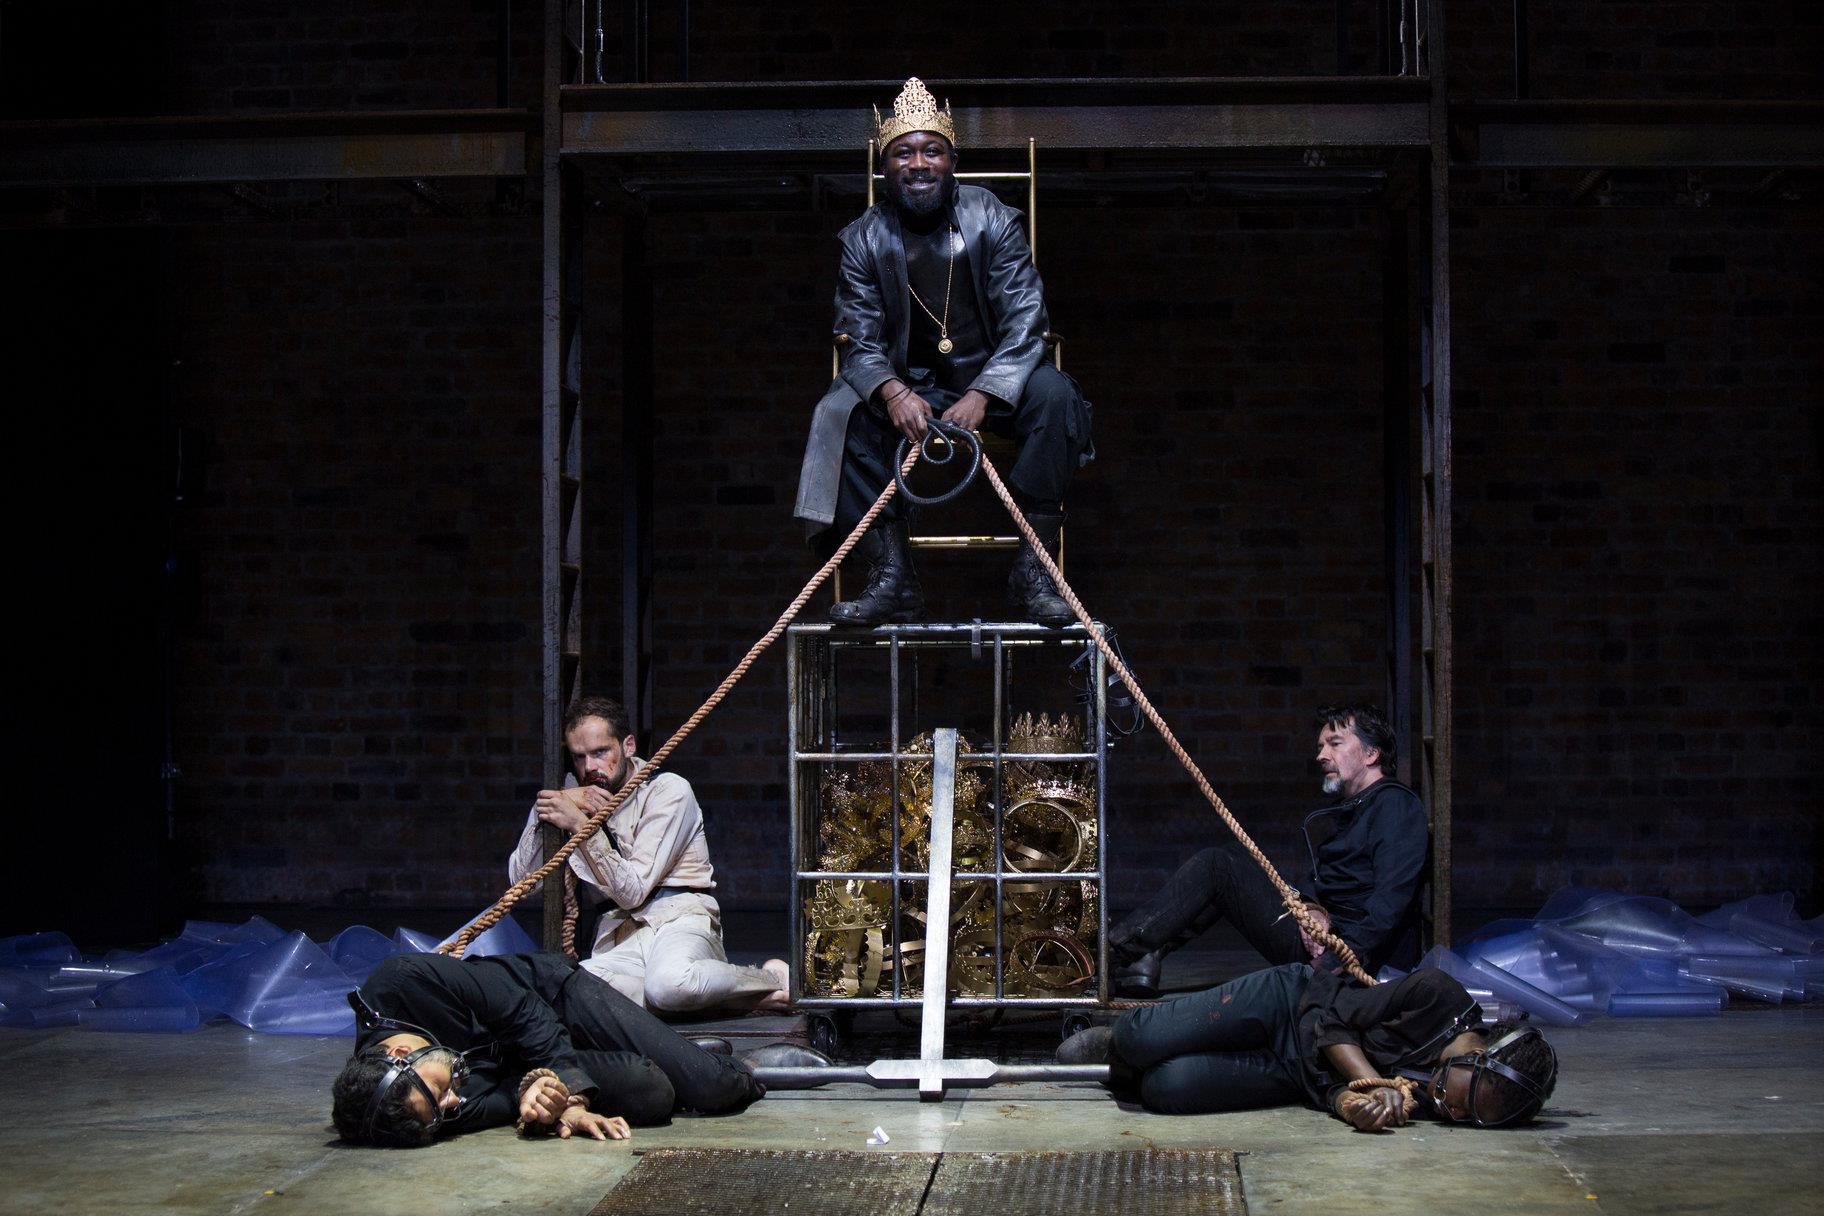 © Ellie Kurttz, RSC (Sagar I M Arya as King of Trebizon, Ralph Davis as Orcanes, Jude Owusu as Tamburlaine, James Clyde as King of Jerusalem, and Debbie Korley as King of Syria)